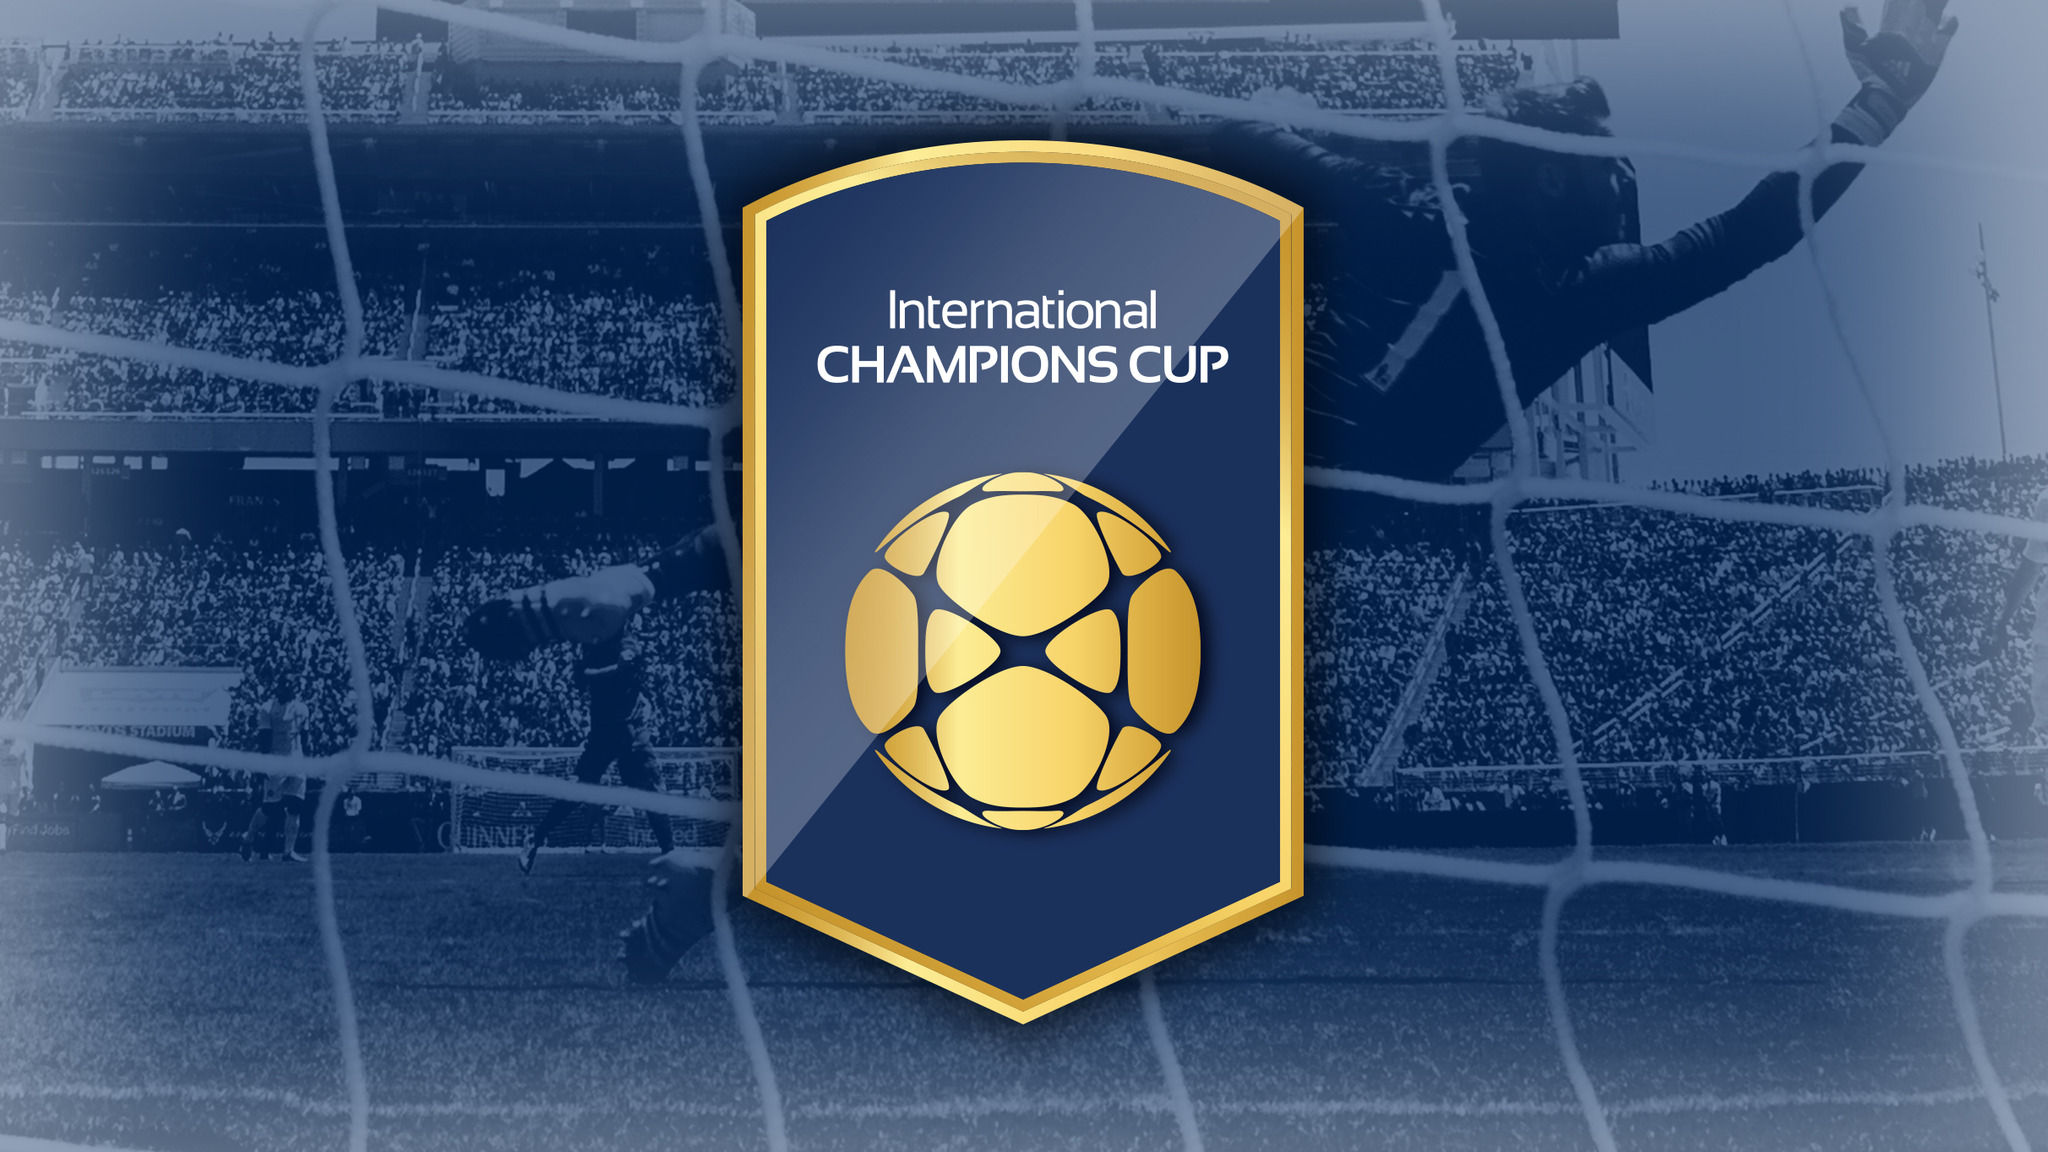 international champions cup - full match schedule and general info